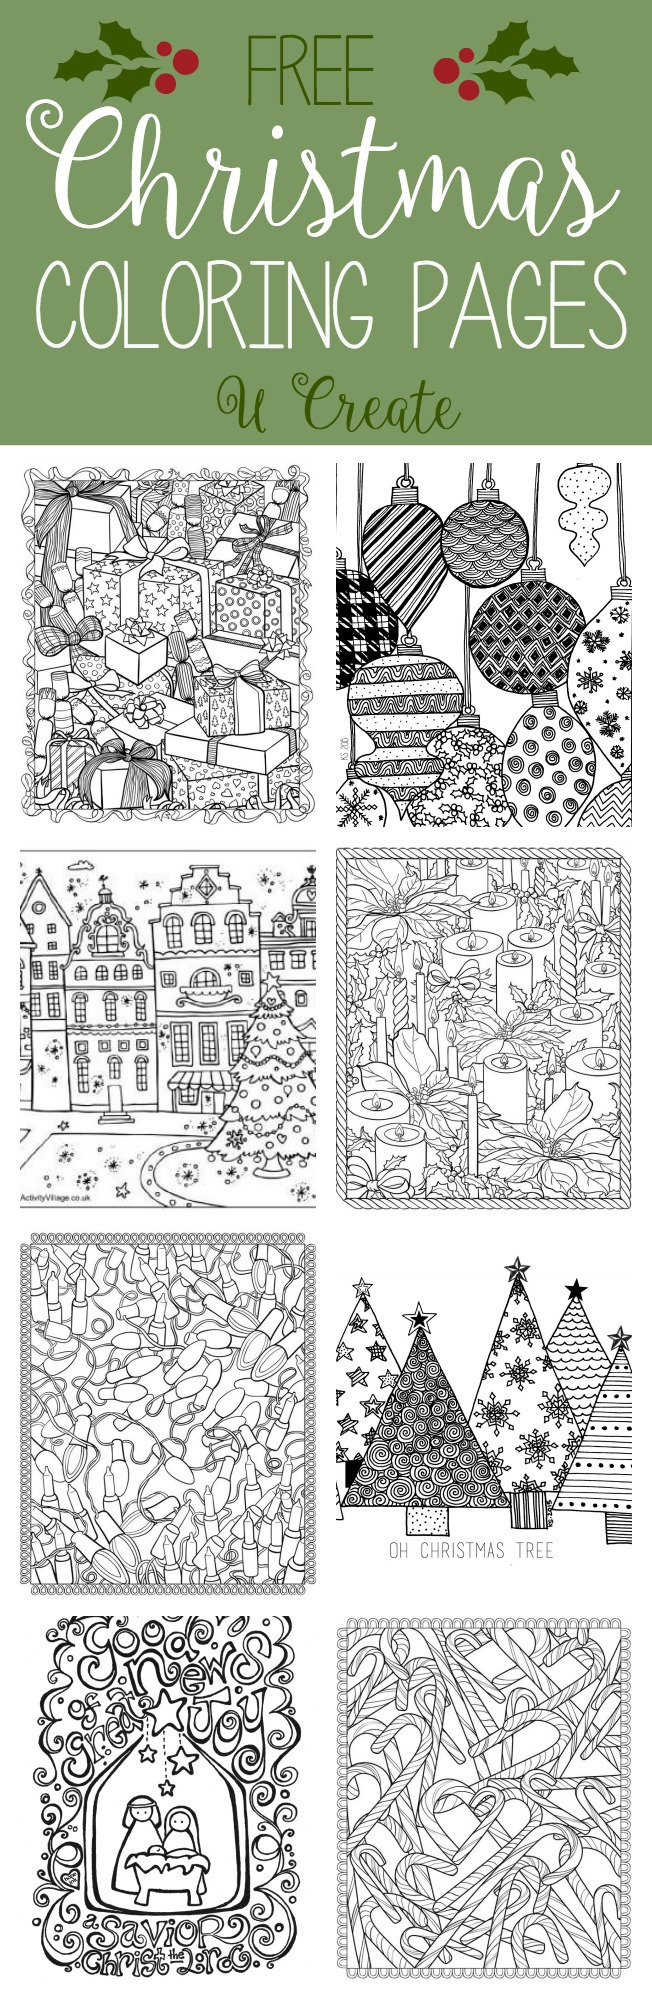 photograph regarding Free Printable Holiday Coloring Pages named Totally free Xmas Grownup Coloring Web pages - U Crank out